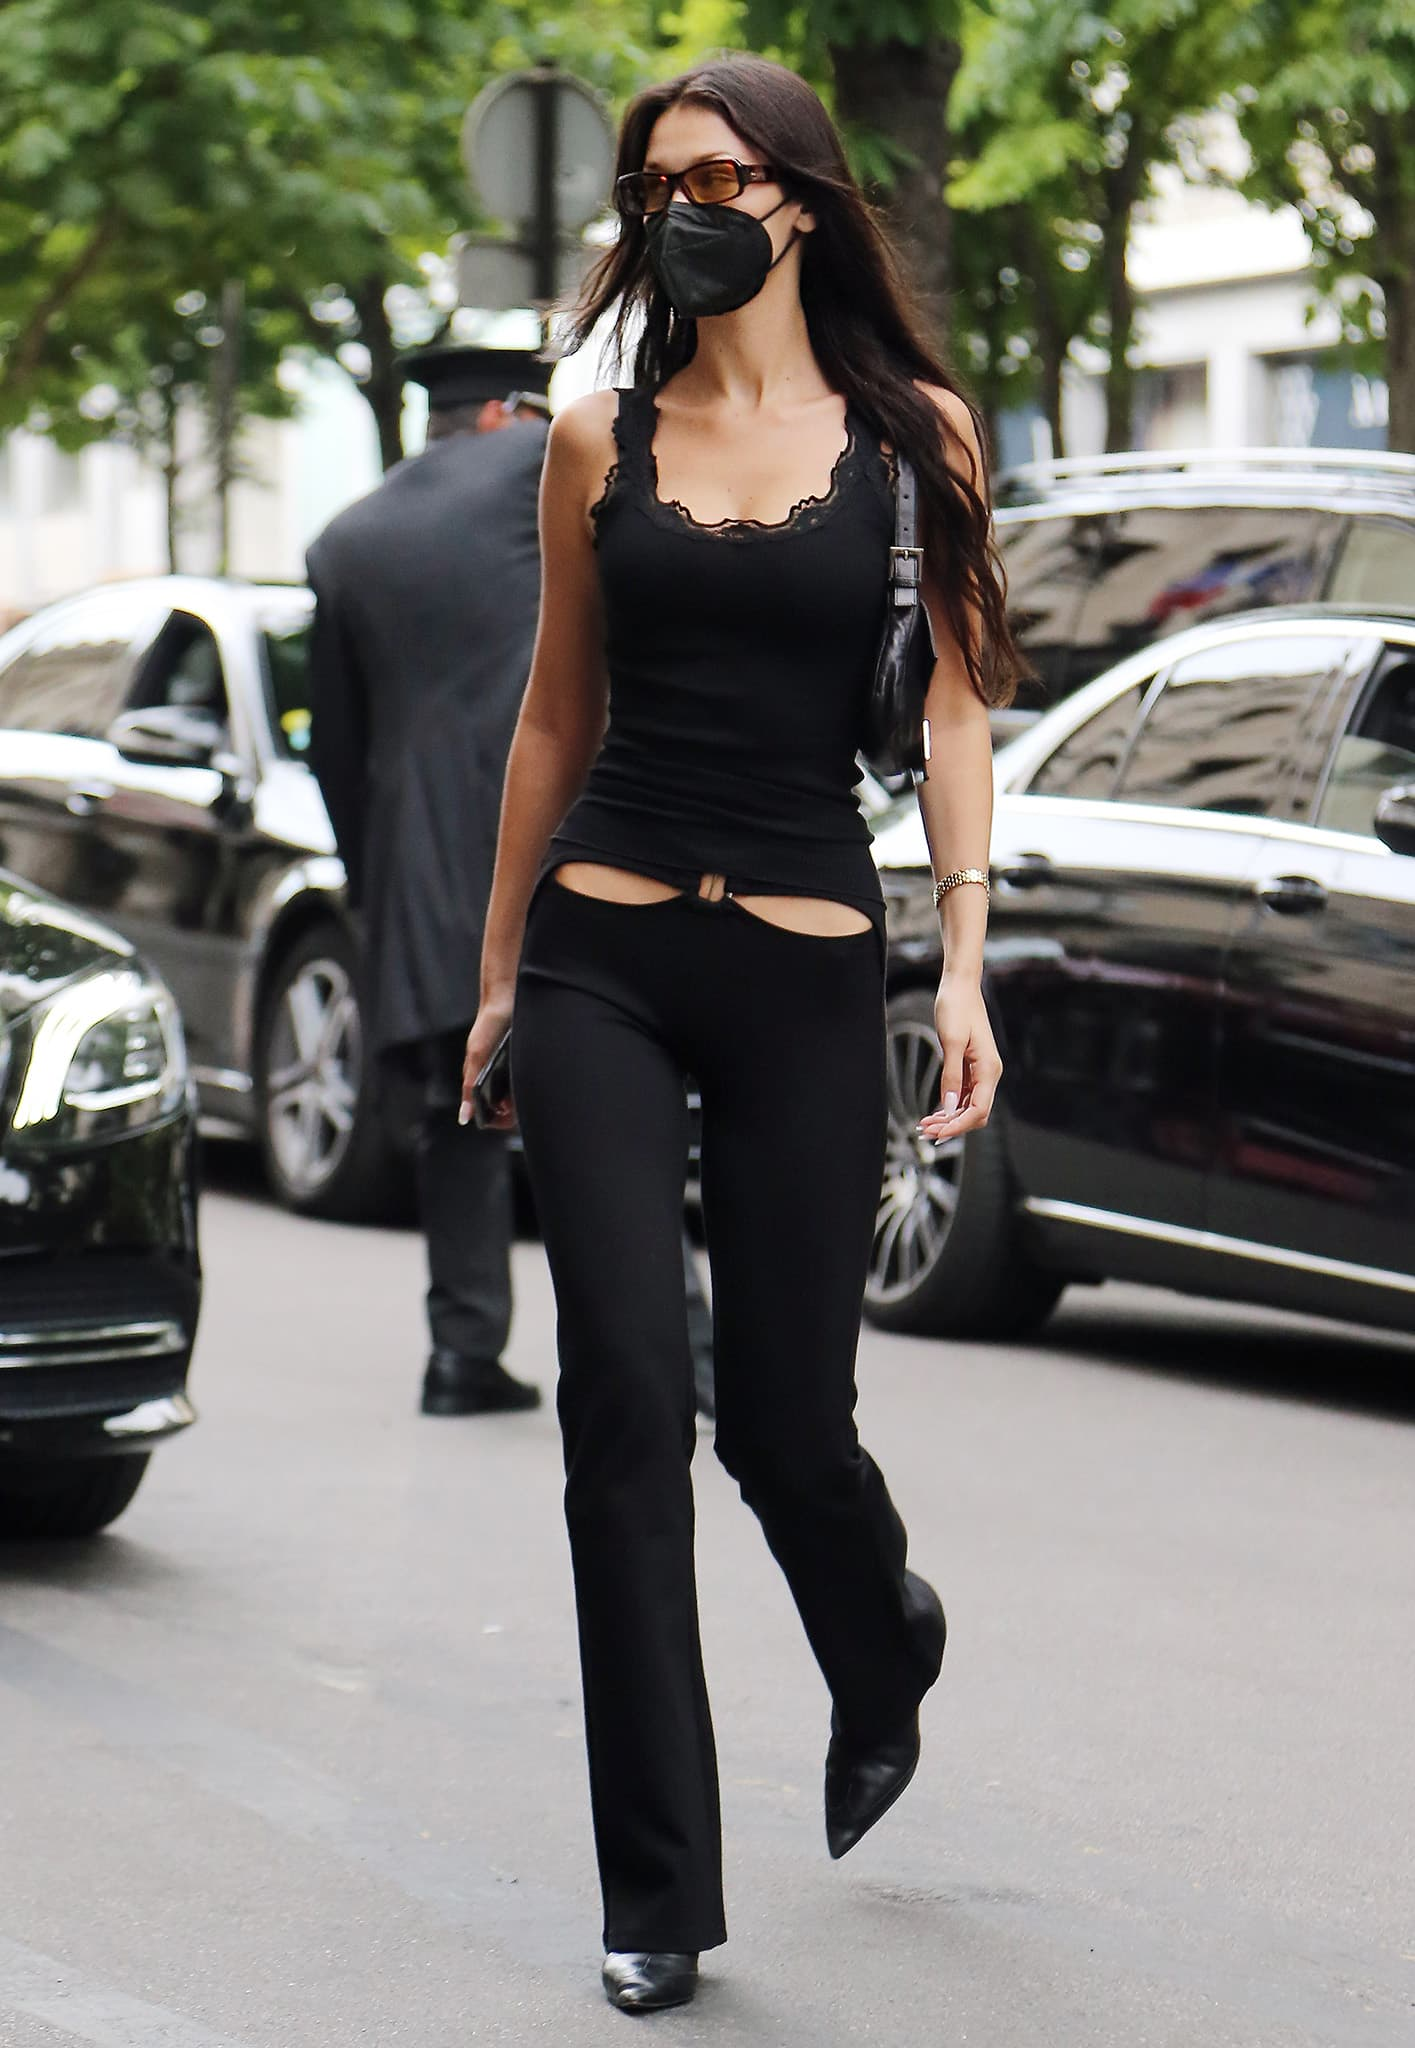 Bella Hadid wears a sleek and sexy black look for Jacques Muss fitting in Paris on June 28, 2021